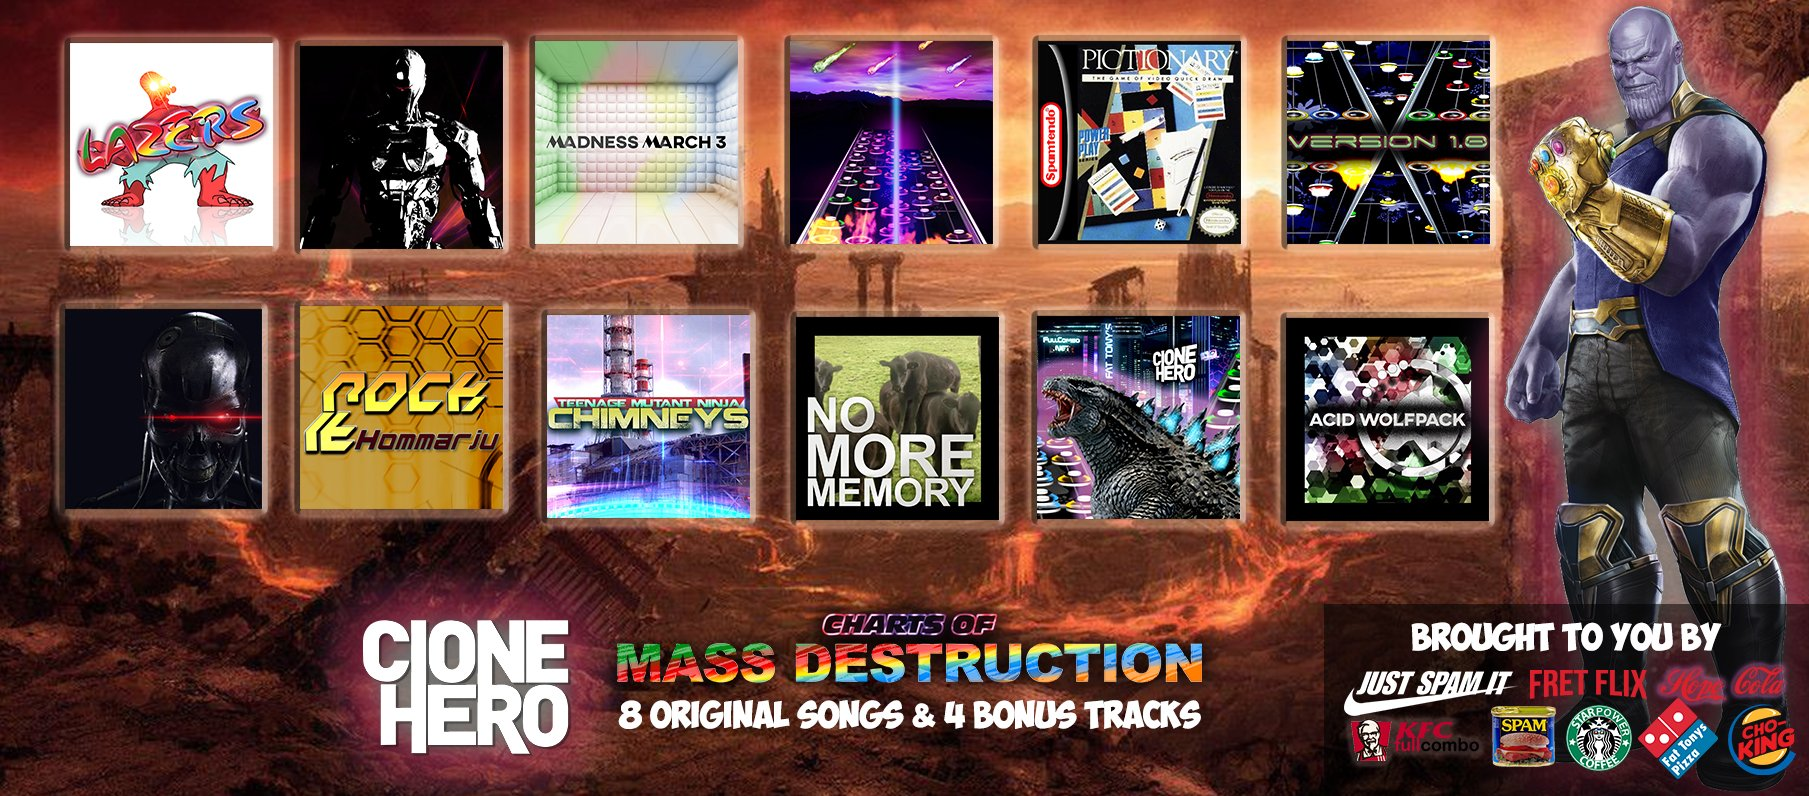 Charts of Mass Destruction Track Pack